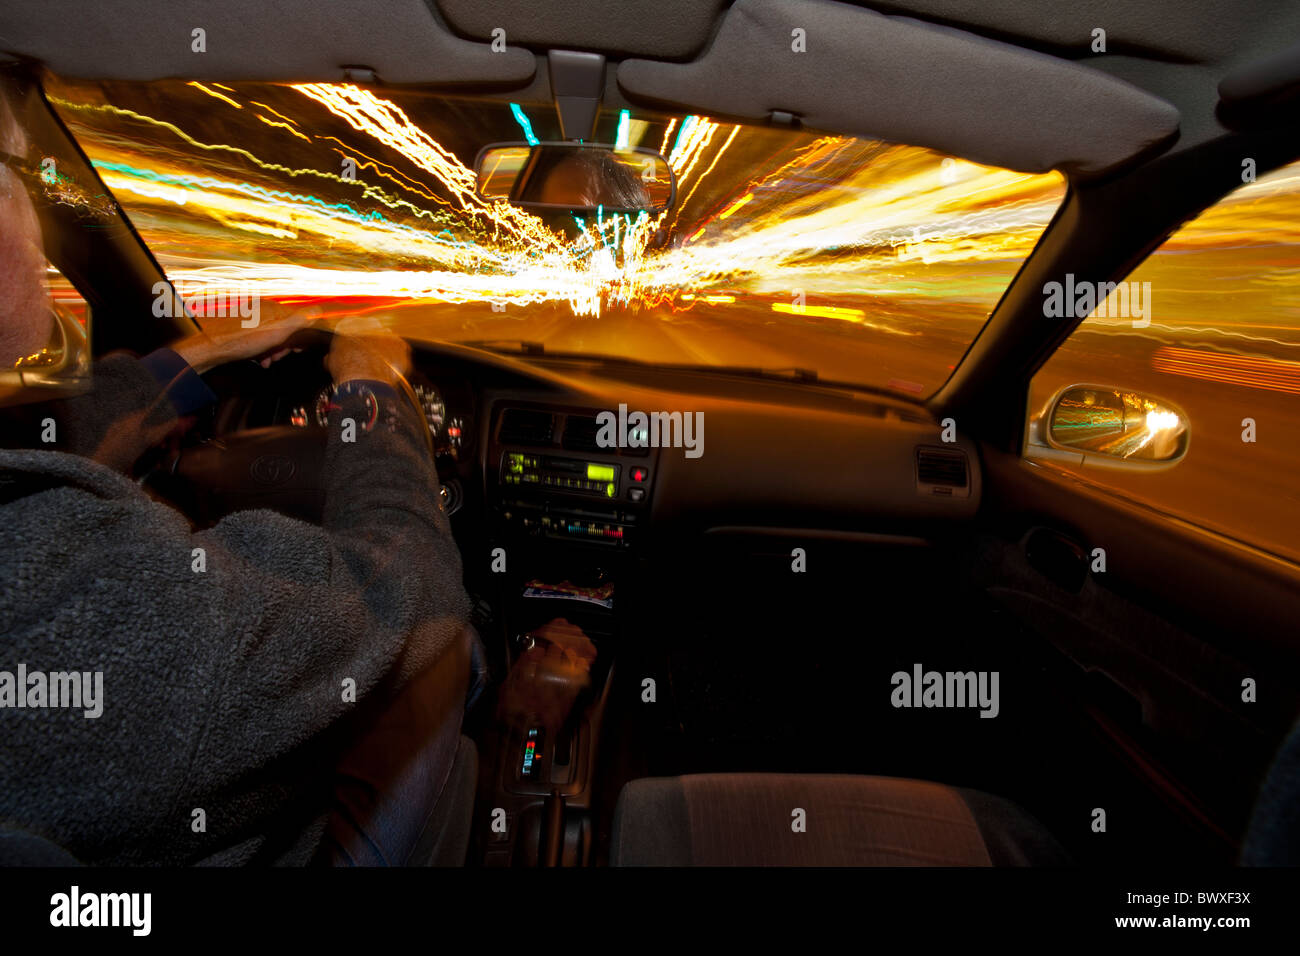 View from car driving at night-Victoria, British Columbia, Canada. - Stock Image